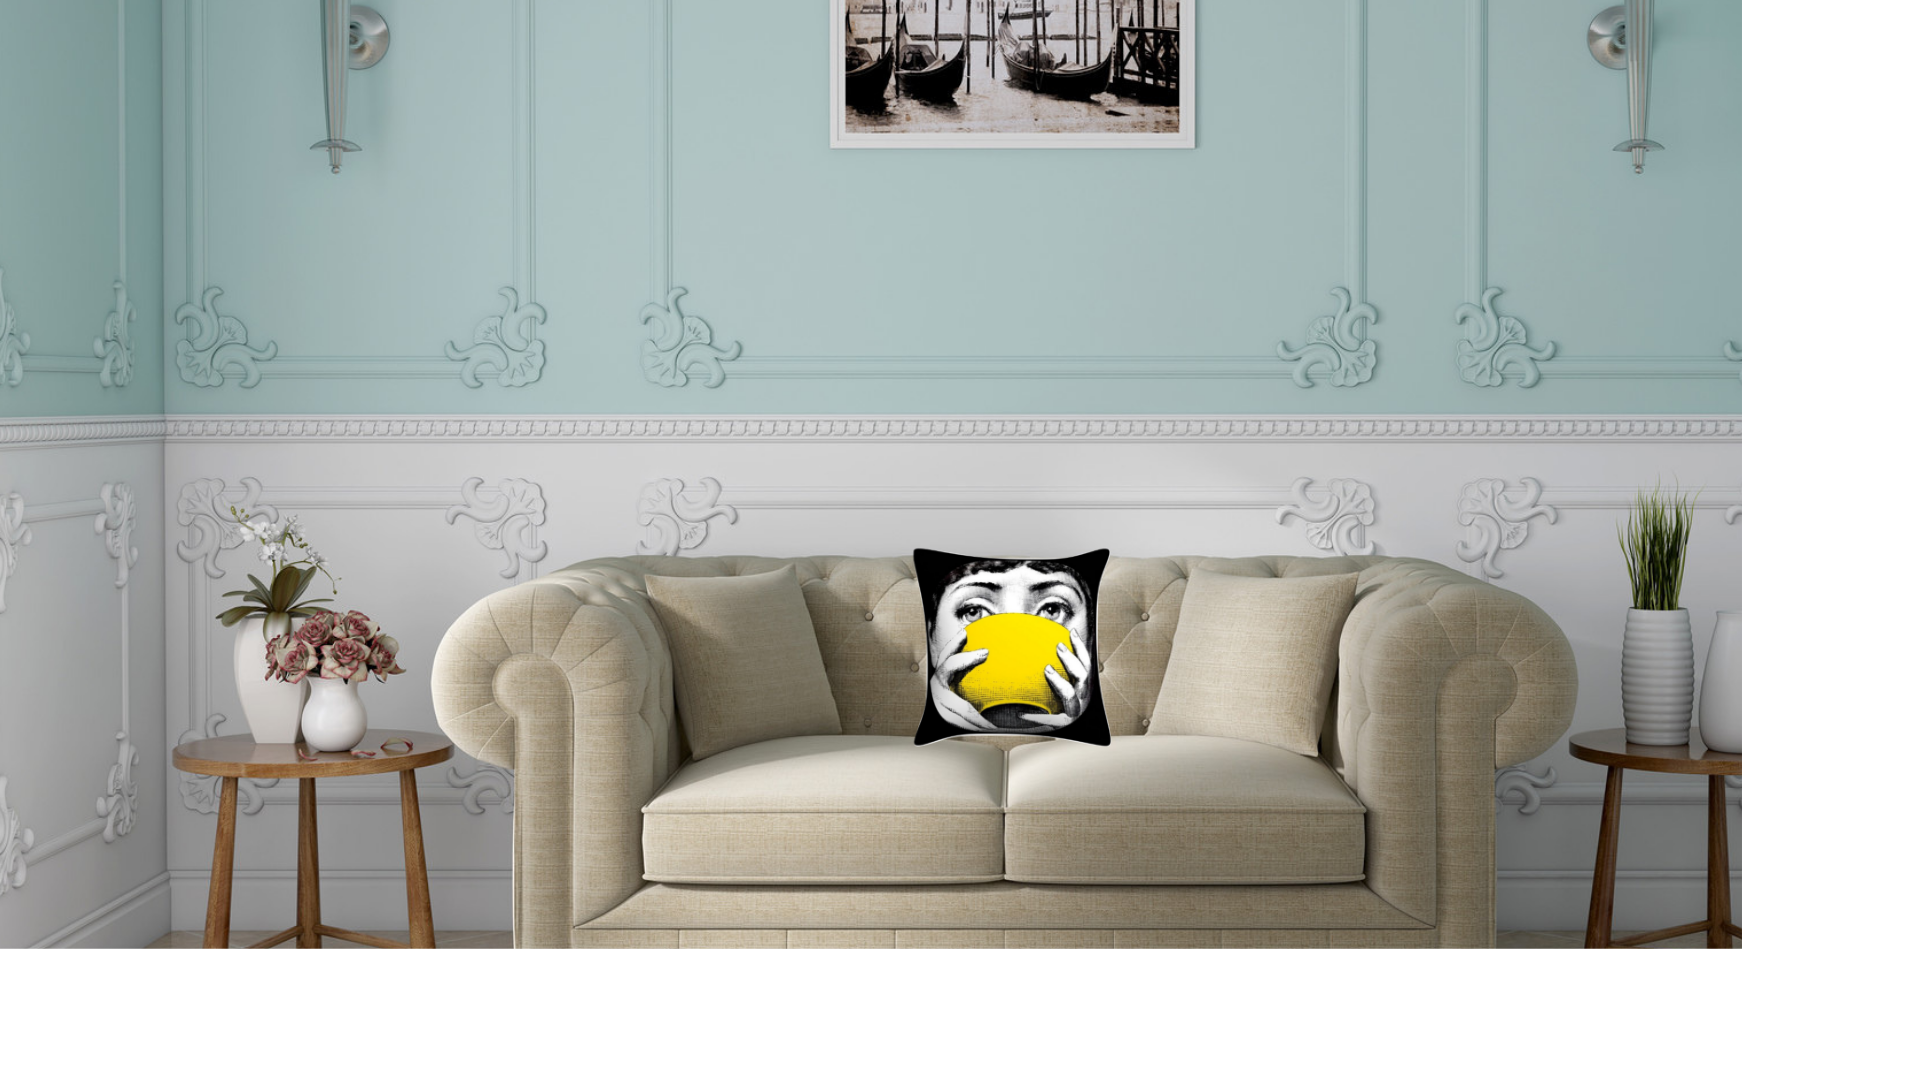 Fornasetti Pillow Cushion Yellow Bowl - Cushion Cover Pillow Case 45cm x 45cm Home Decor, Lina Cavalieri Floral Bedroom Living Room